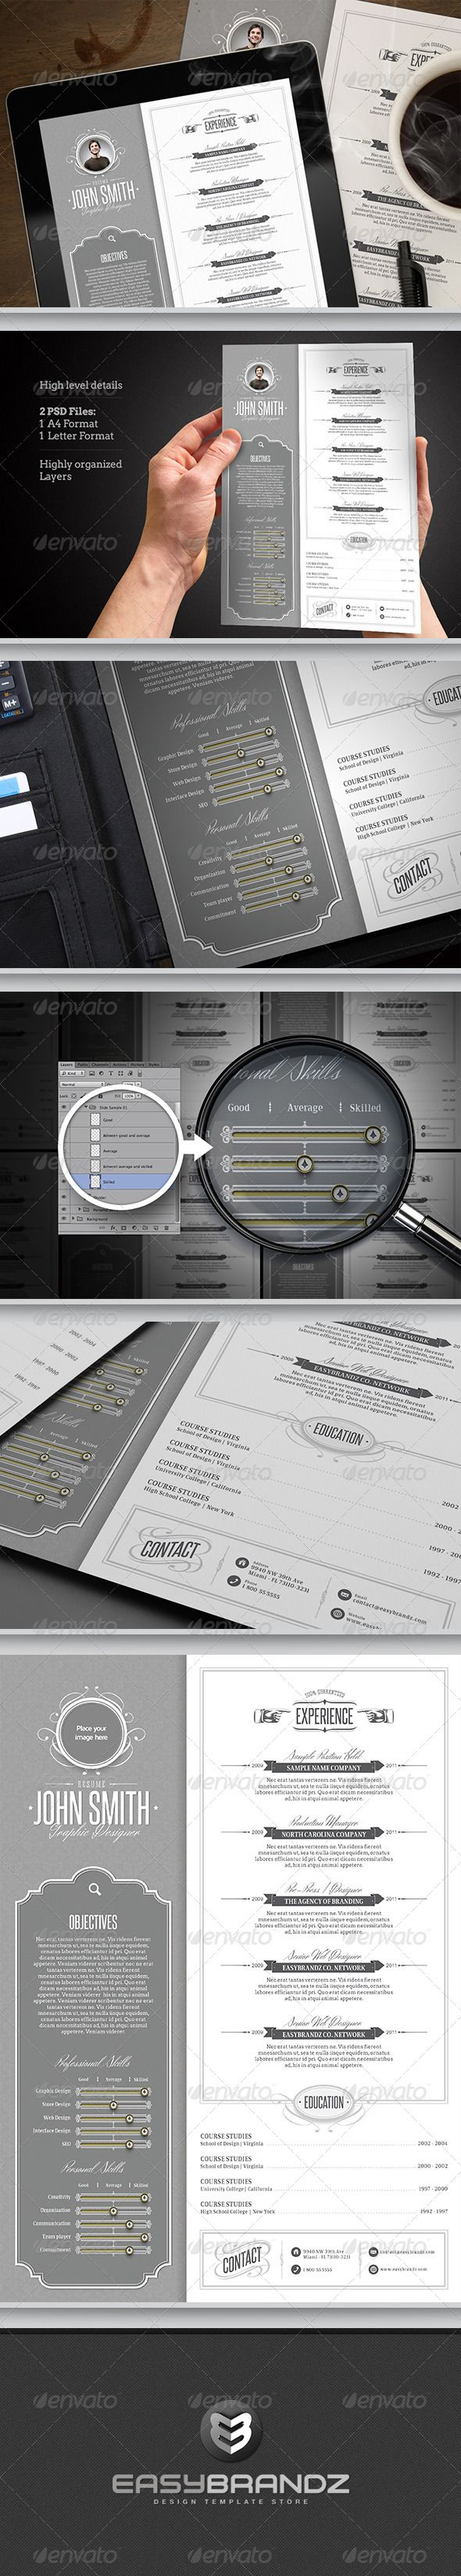 Retro Resume Template 101 best CREATIVE CV